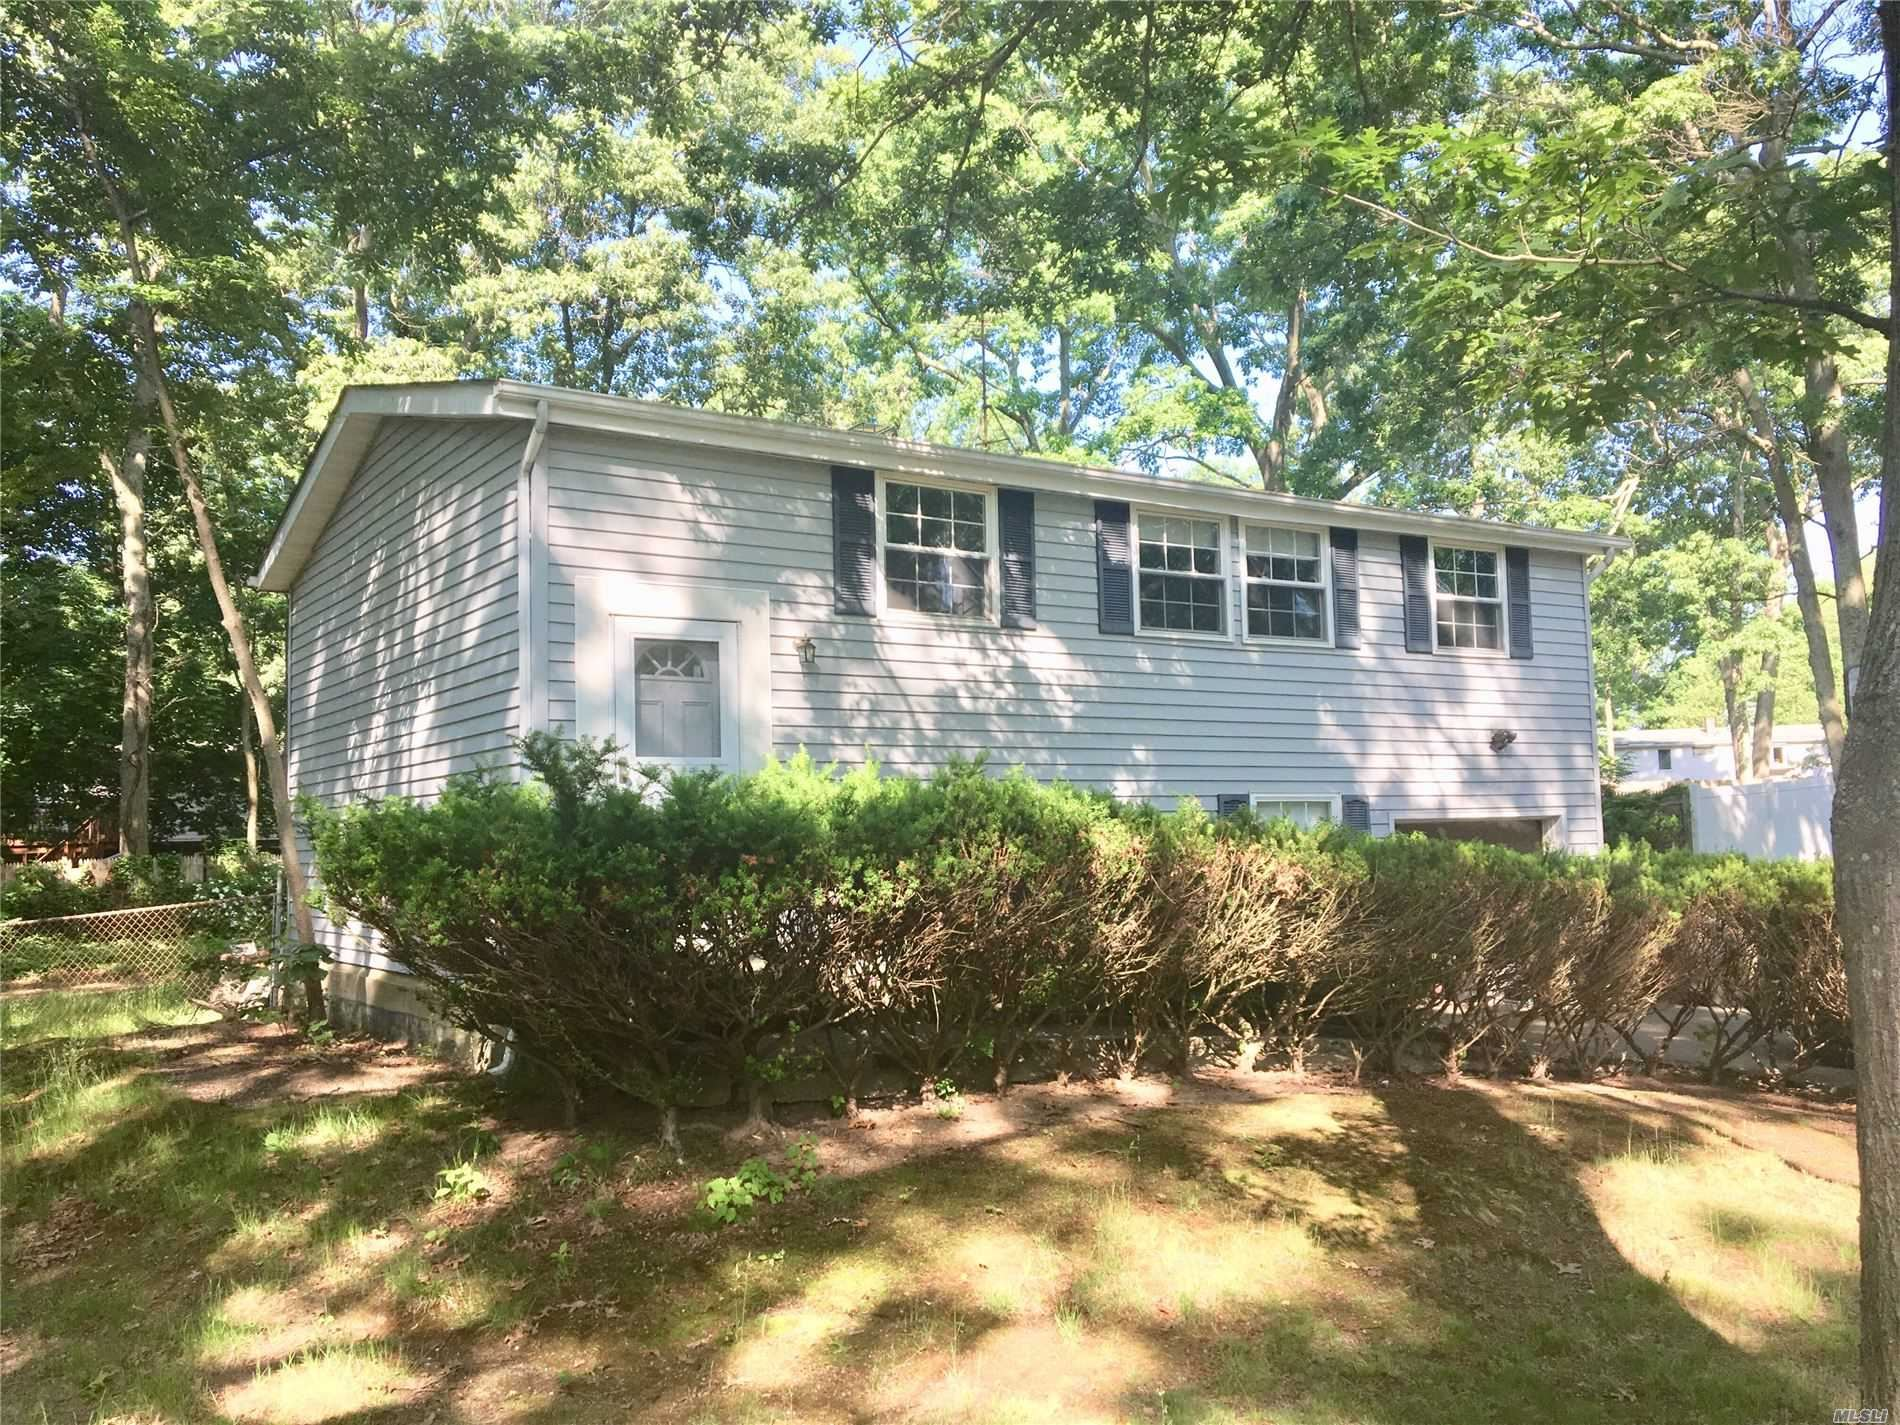 12 Possum Lane, East Setauket, NY 11733 - MLS#: 3220692